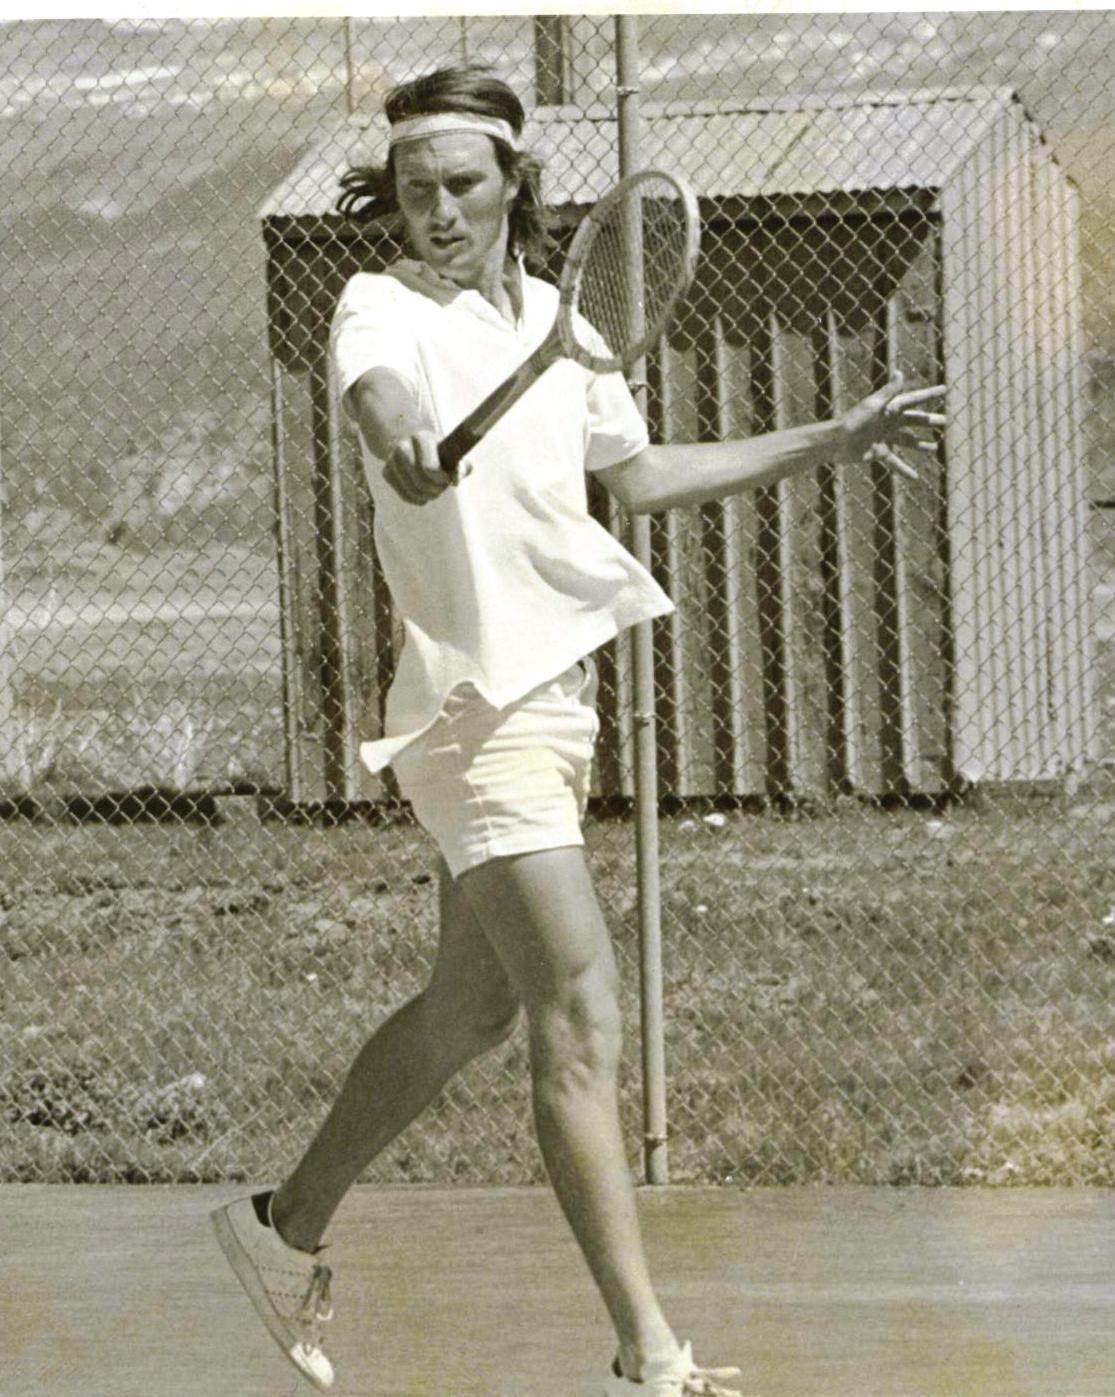 Tennis was more pure...back in the day.